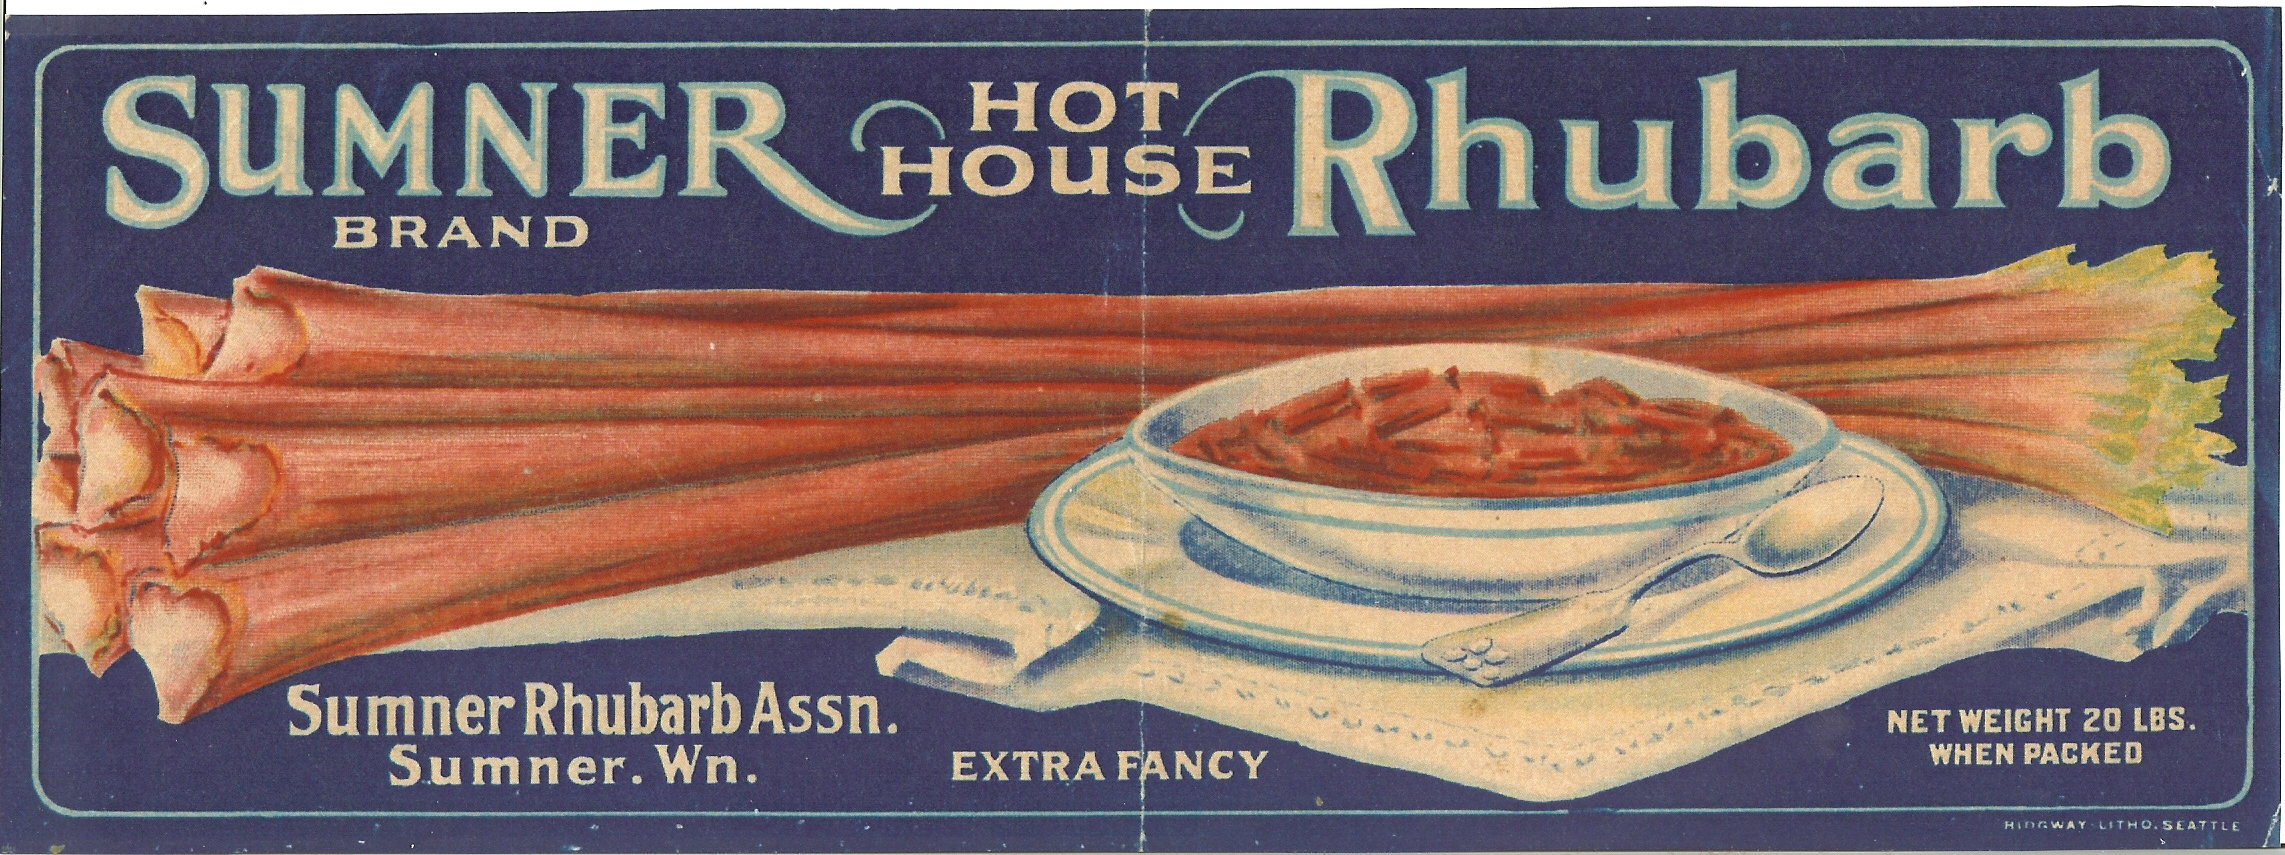 rhubarb-crate-label-1931